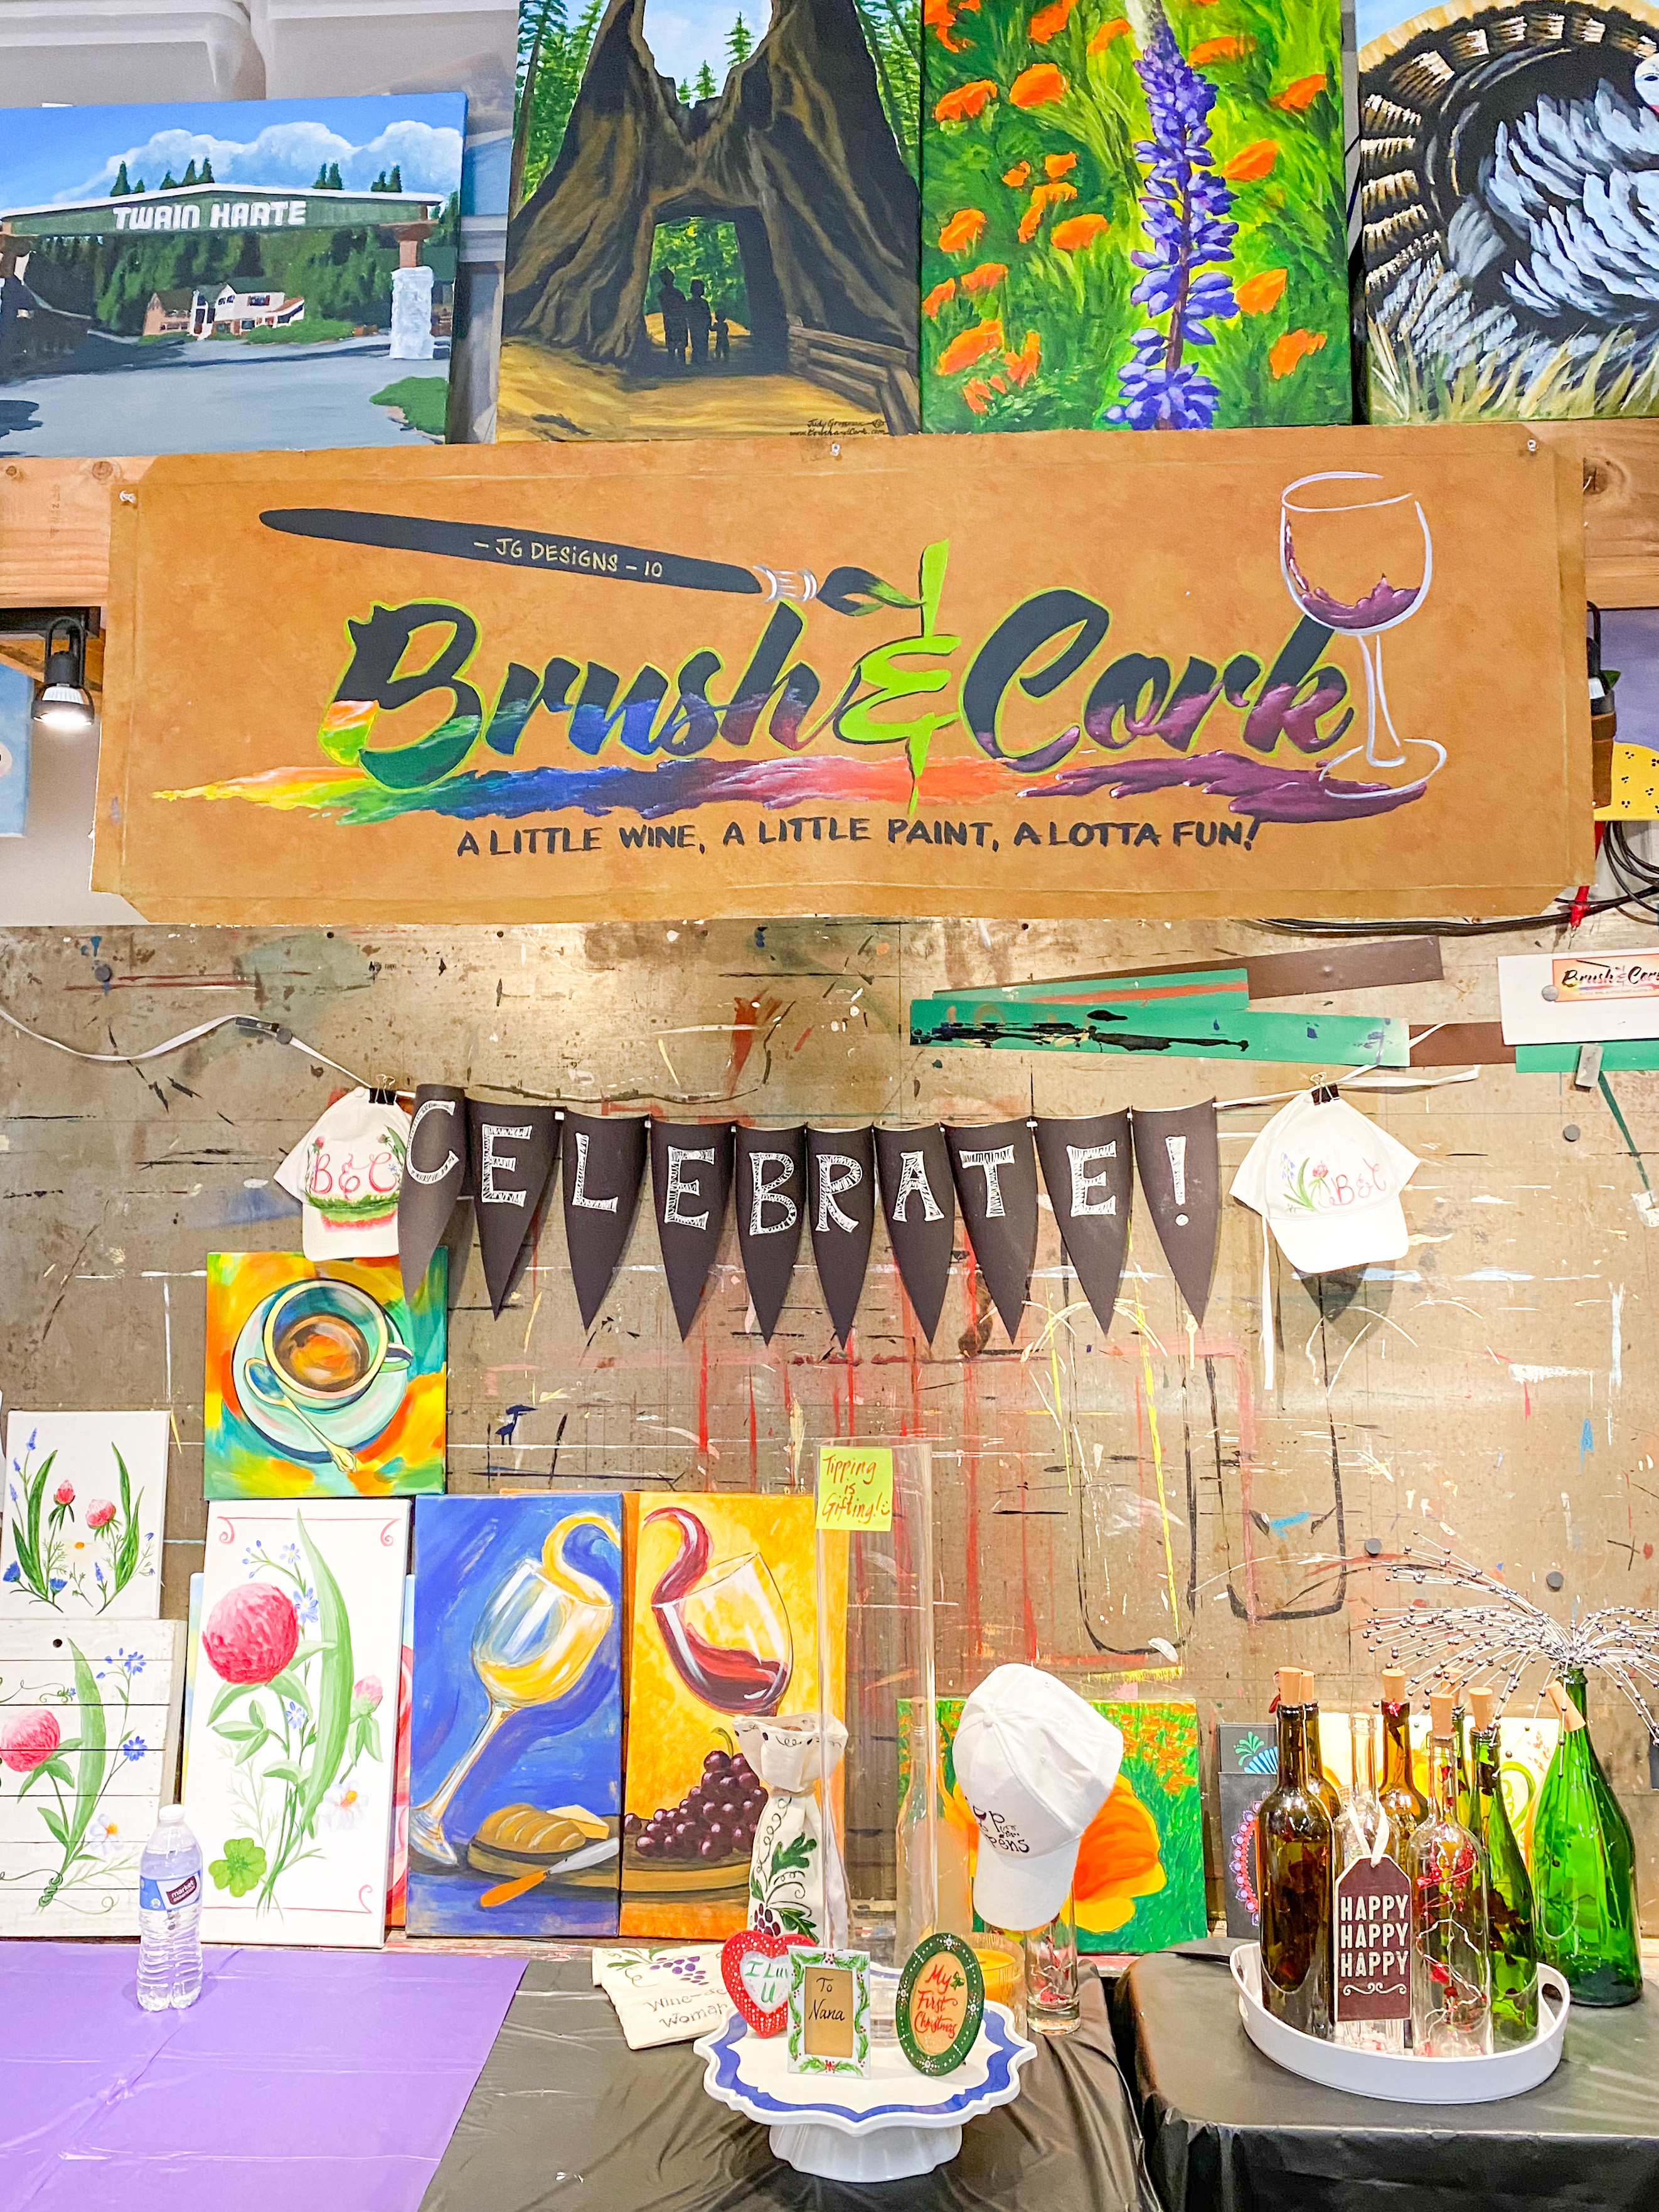 Brush and Cork sign